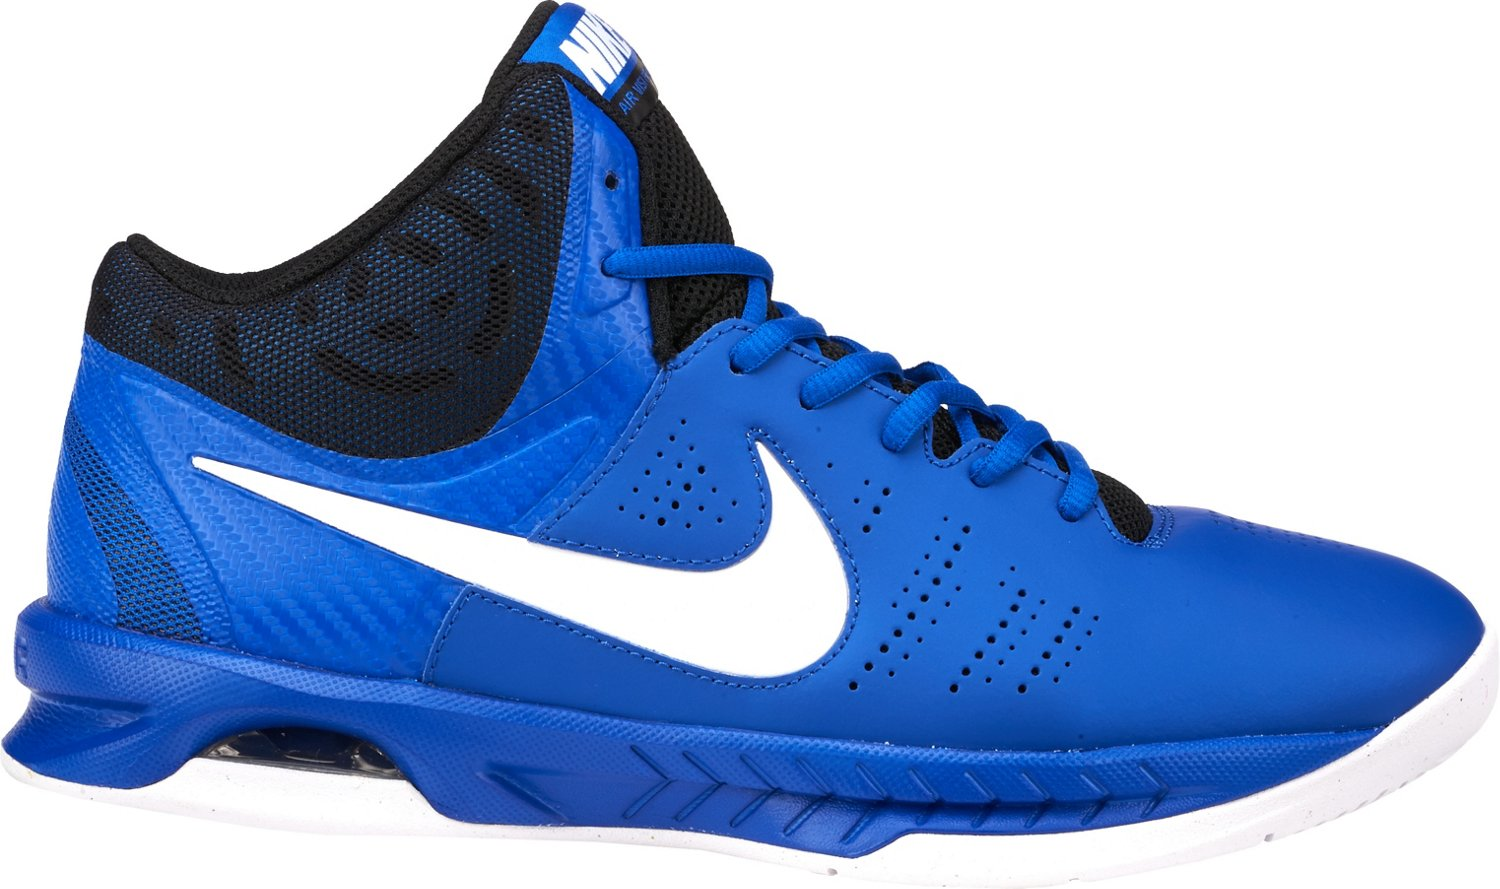 64fb8417c470 Nike Men s Air Visi Pro VI Basketball Shoes